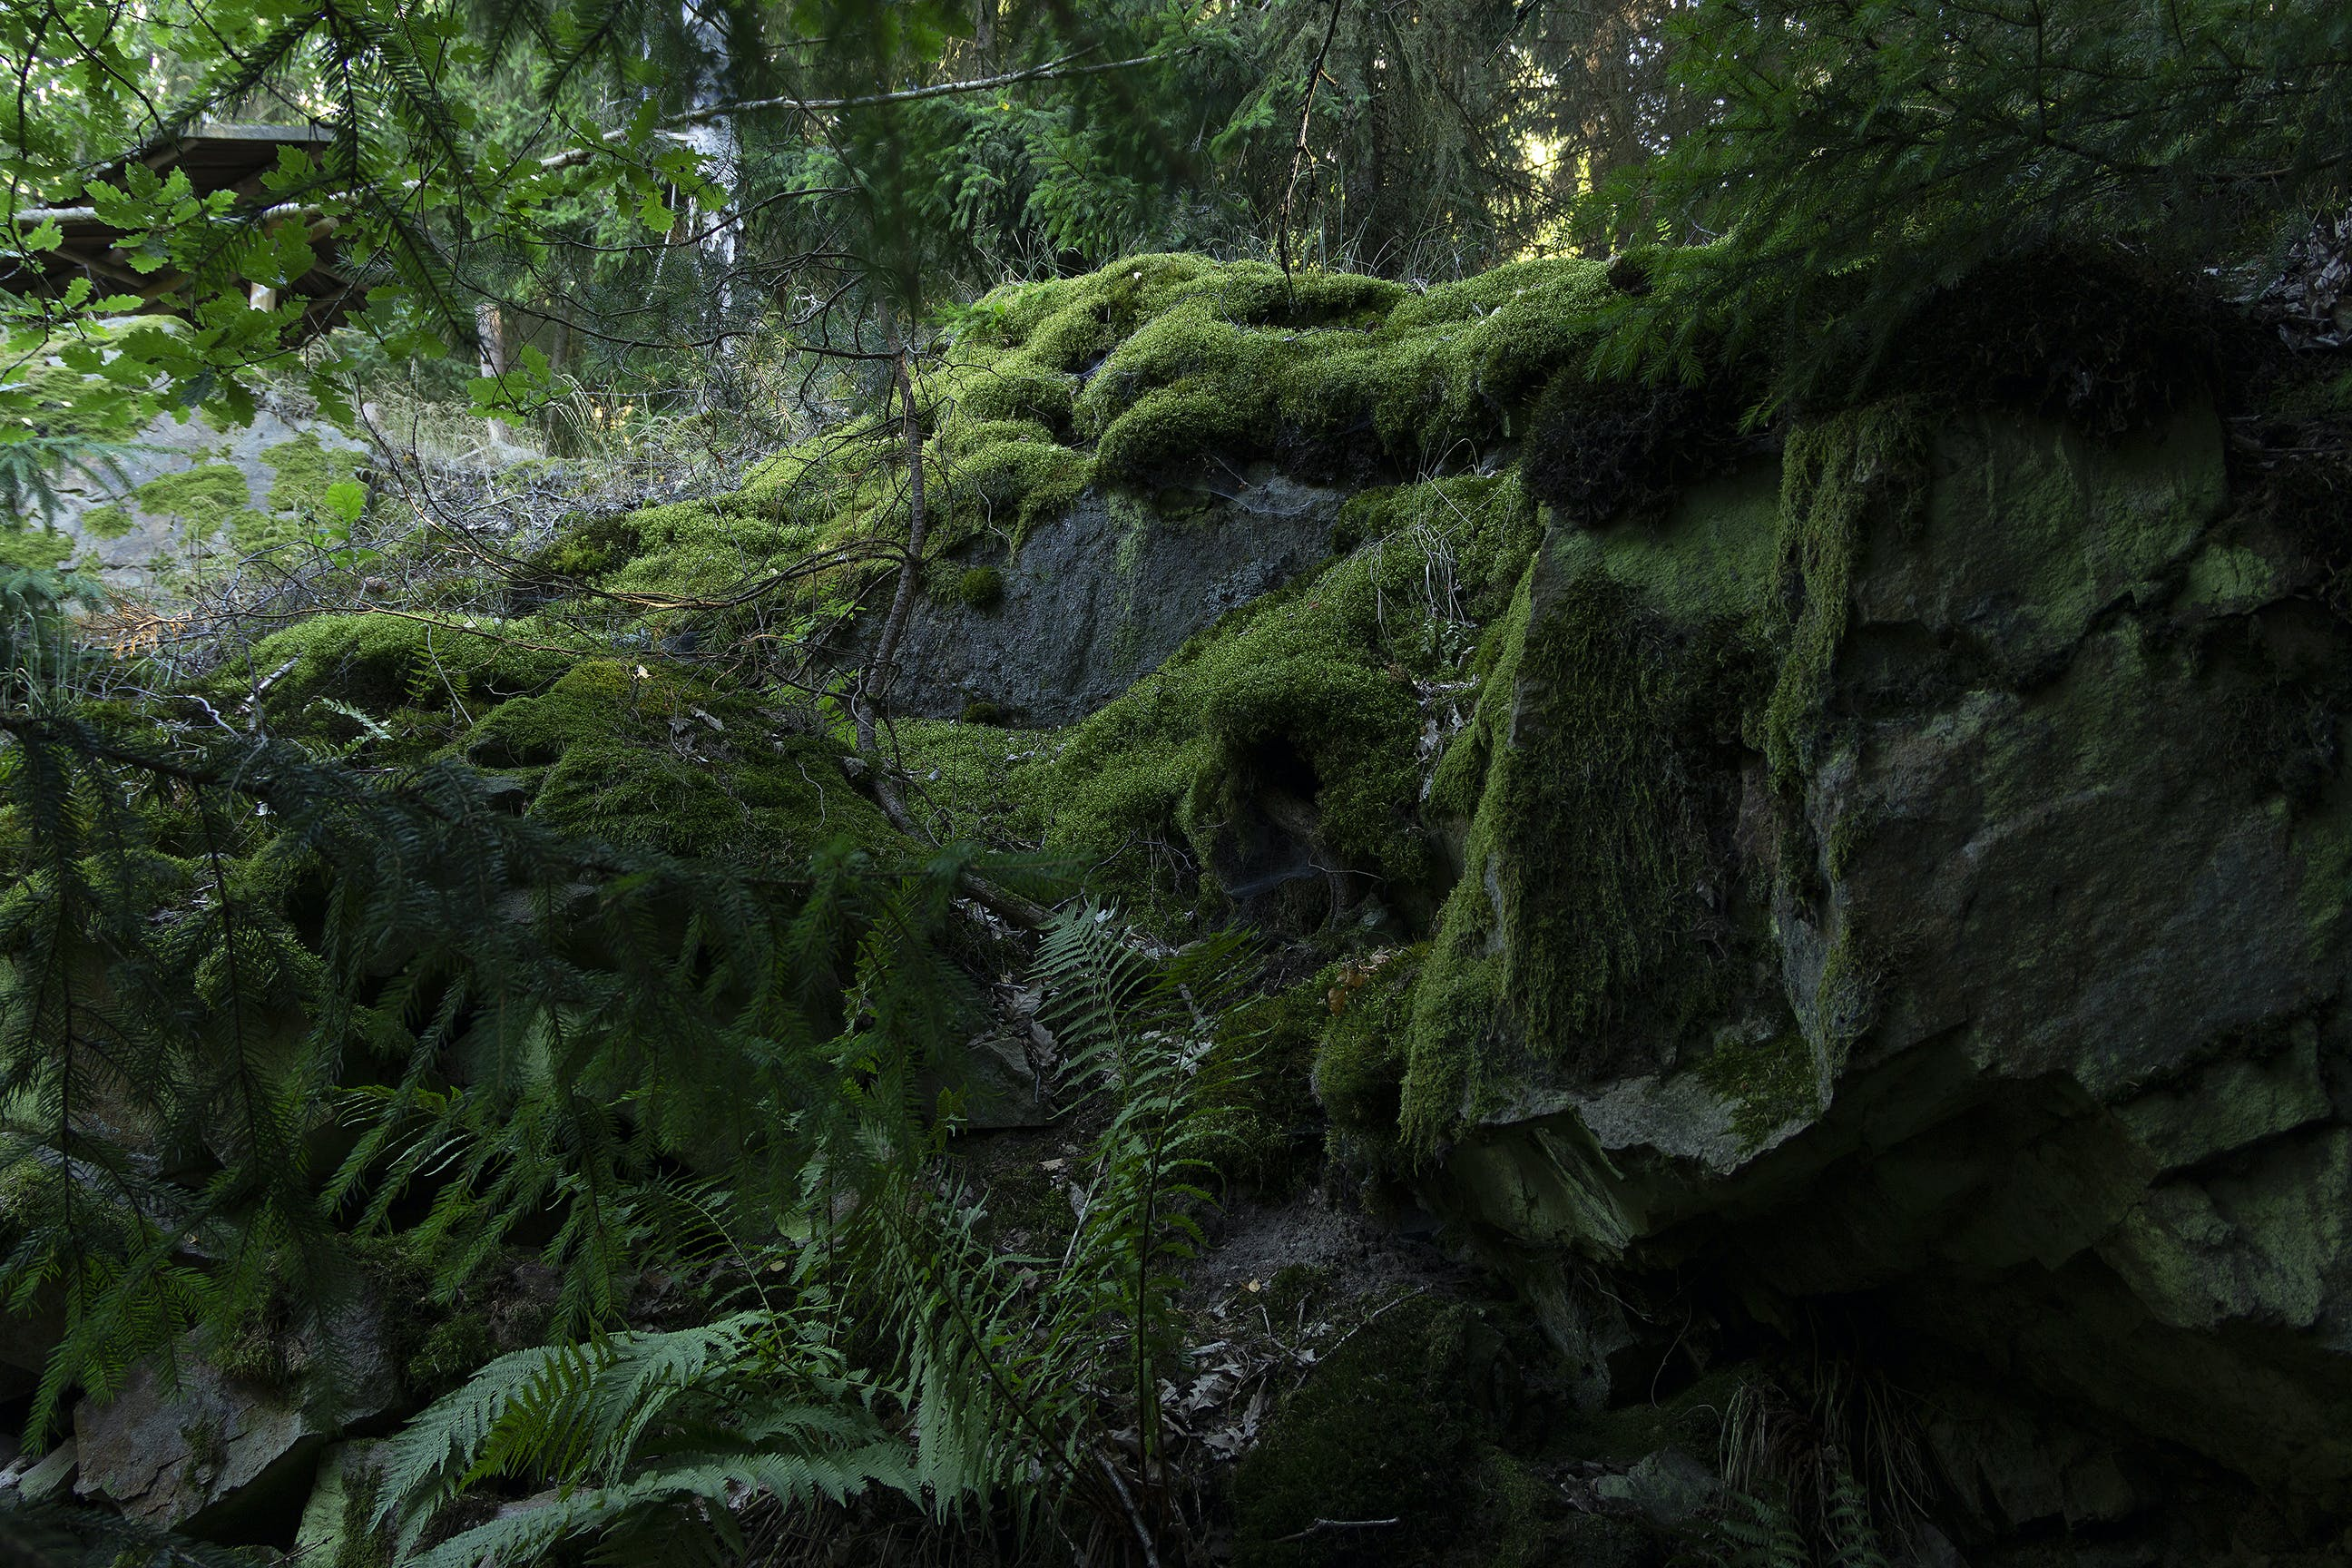 Photo of Mossy Rocks and Fern Plants